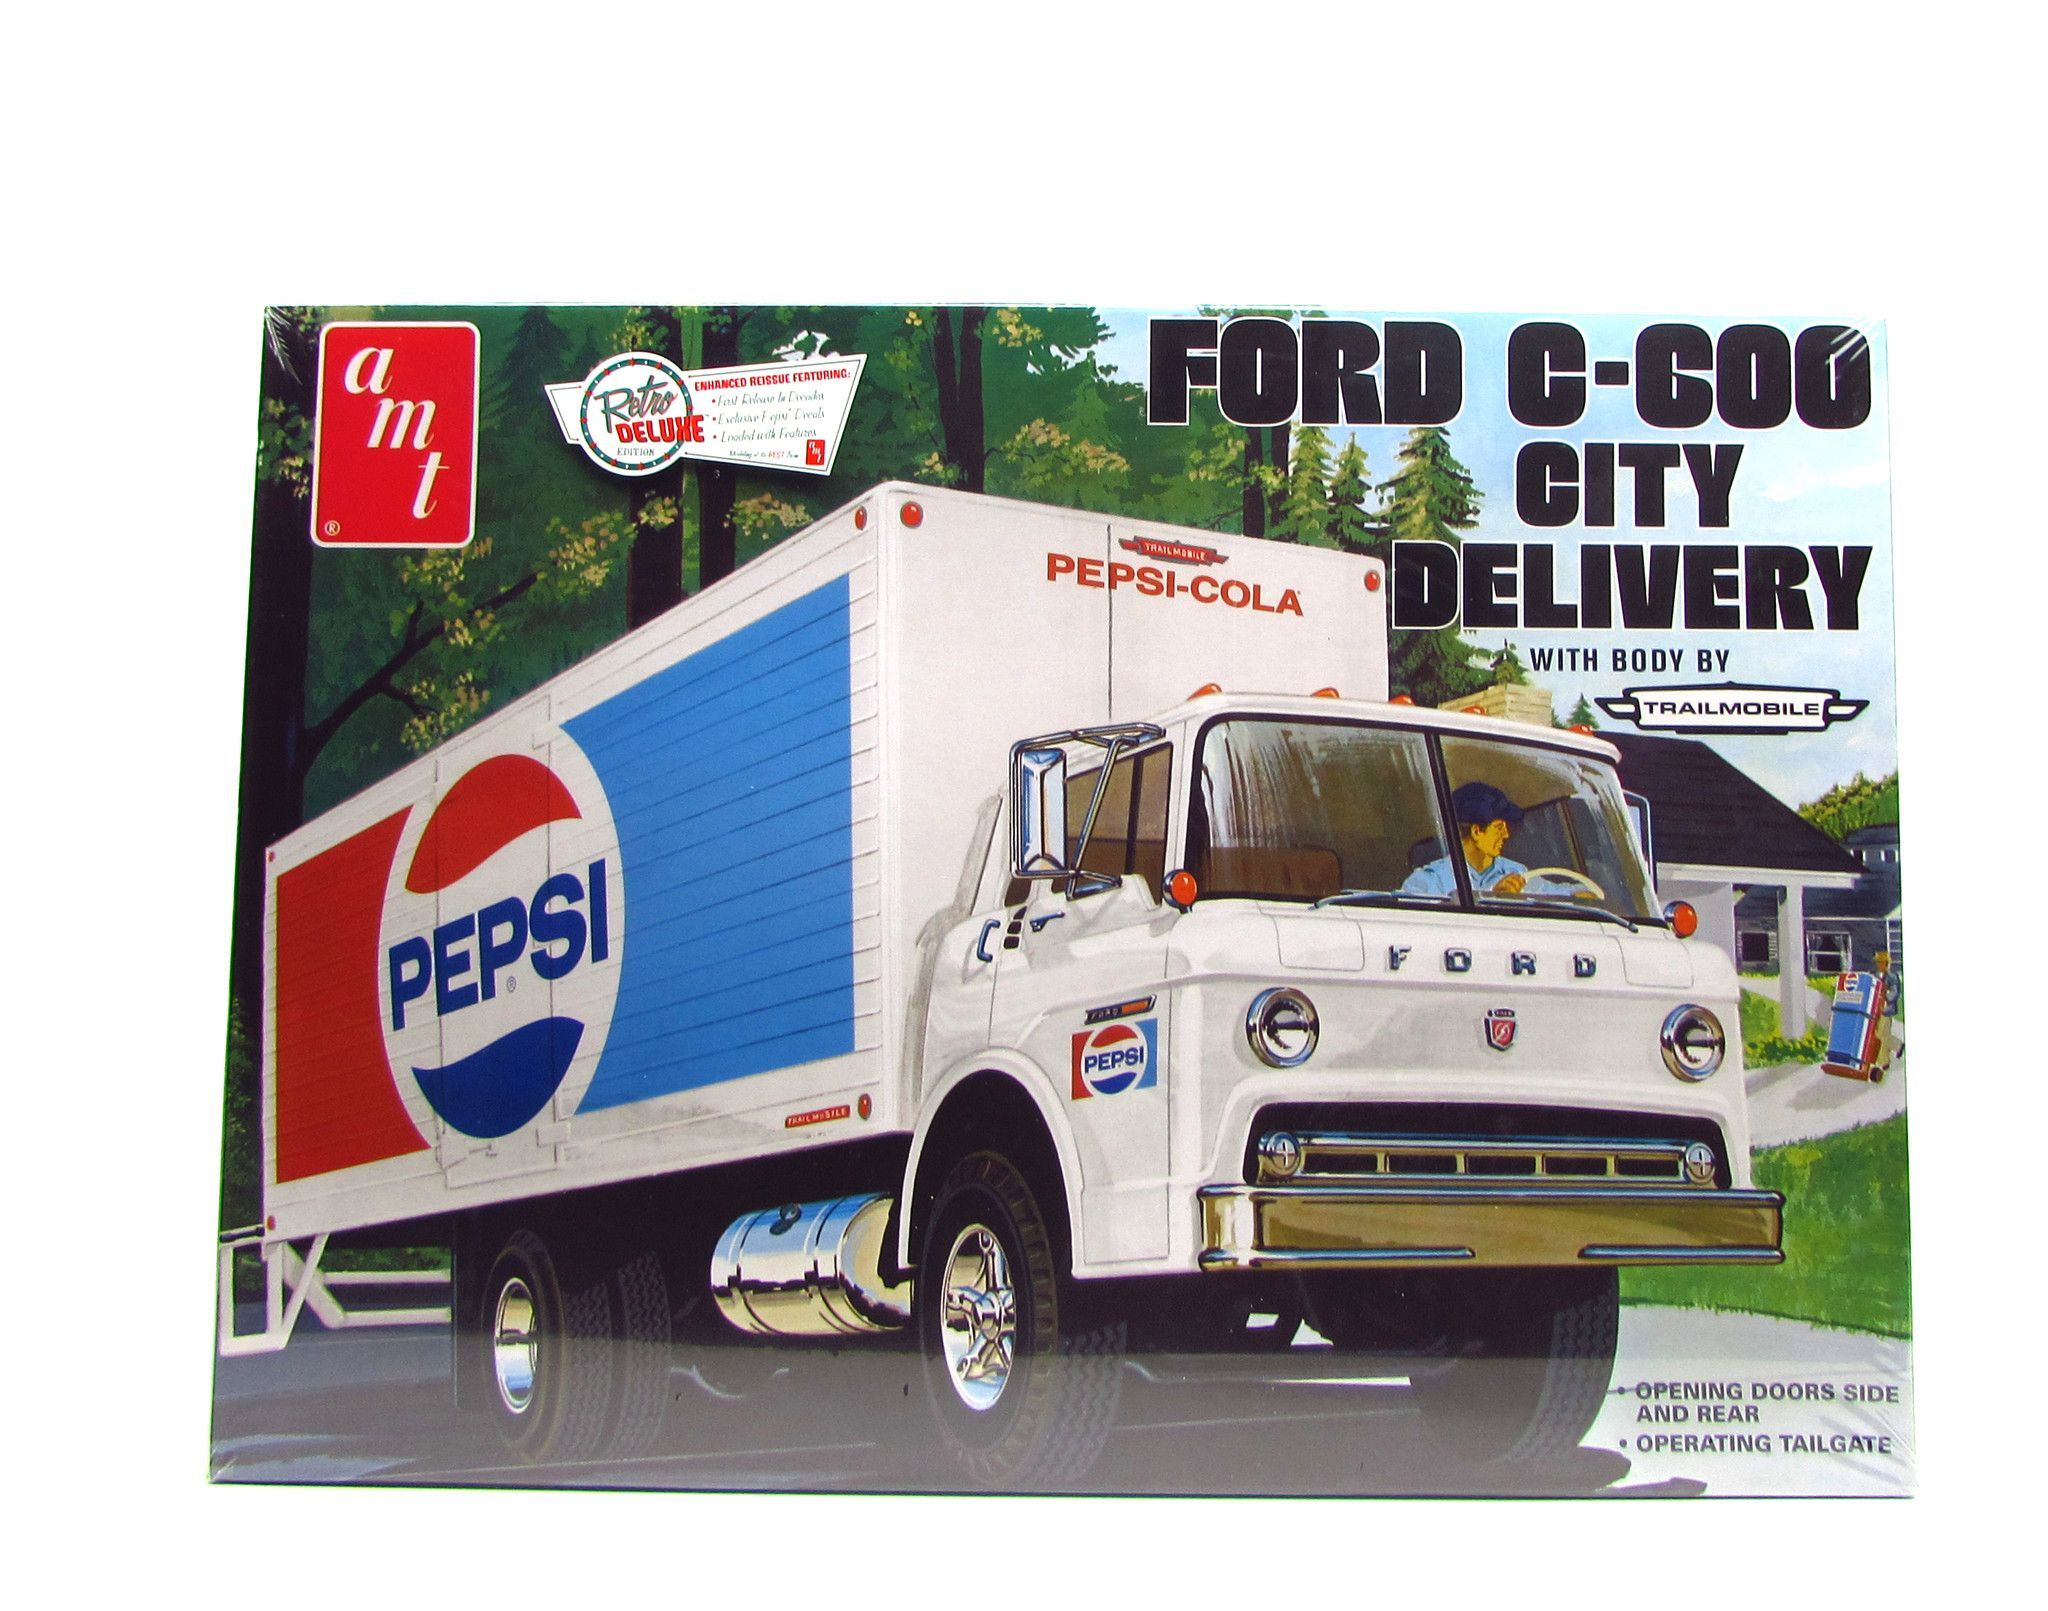 Ford C 600 City Delivery Truck AMT 804 1 25 New Plastic Model